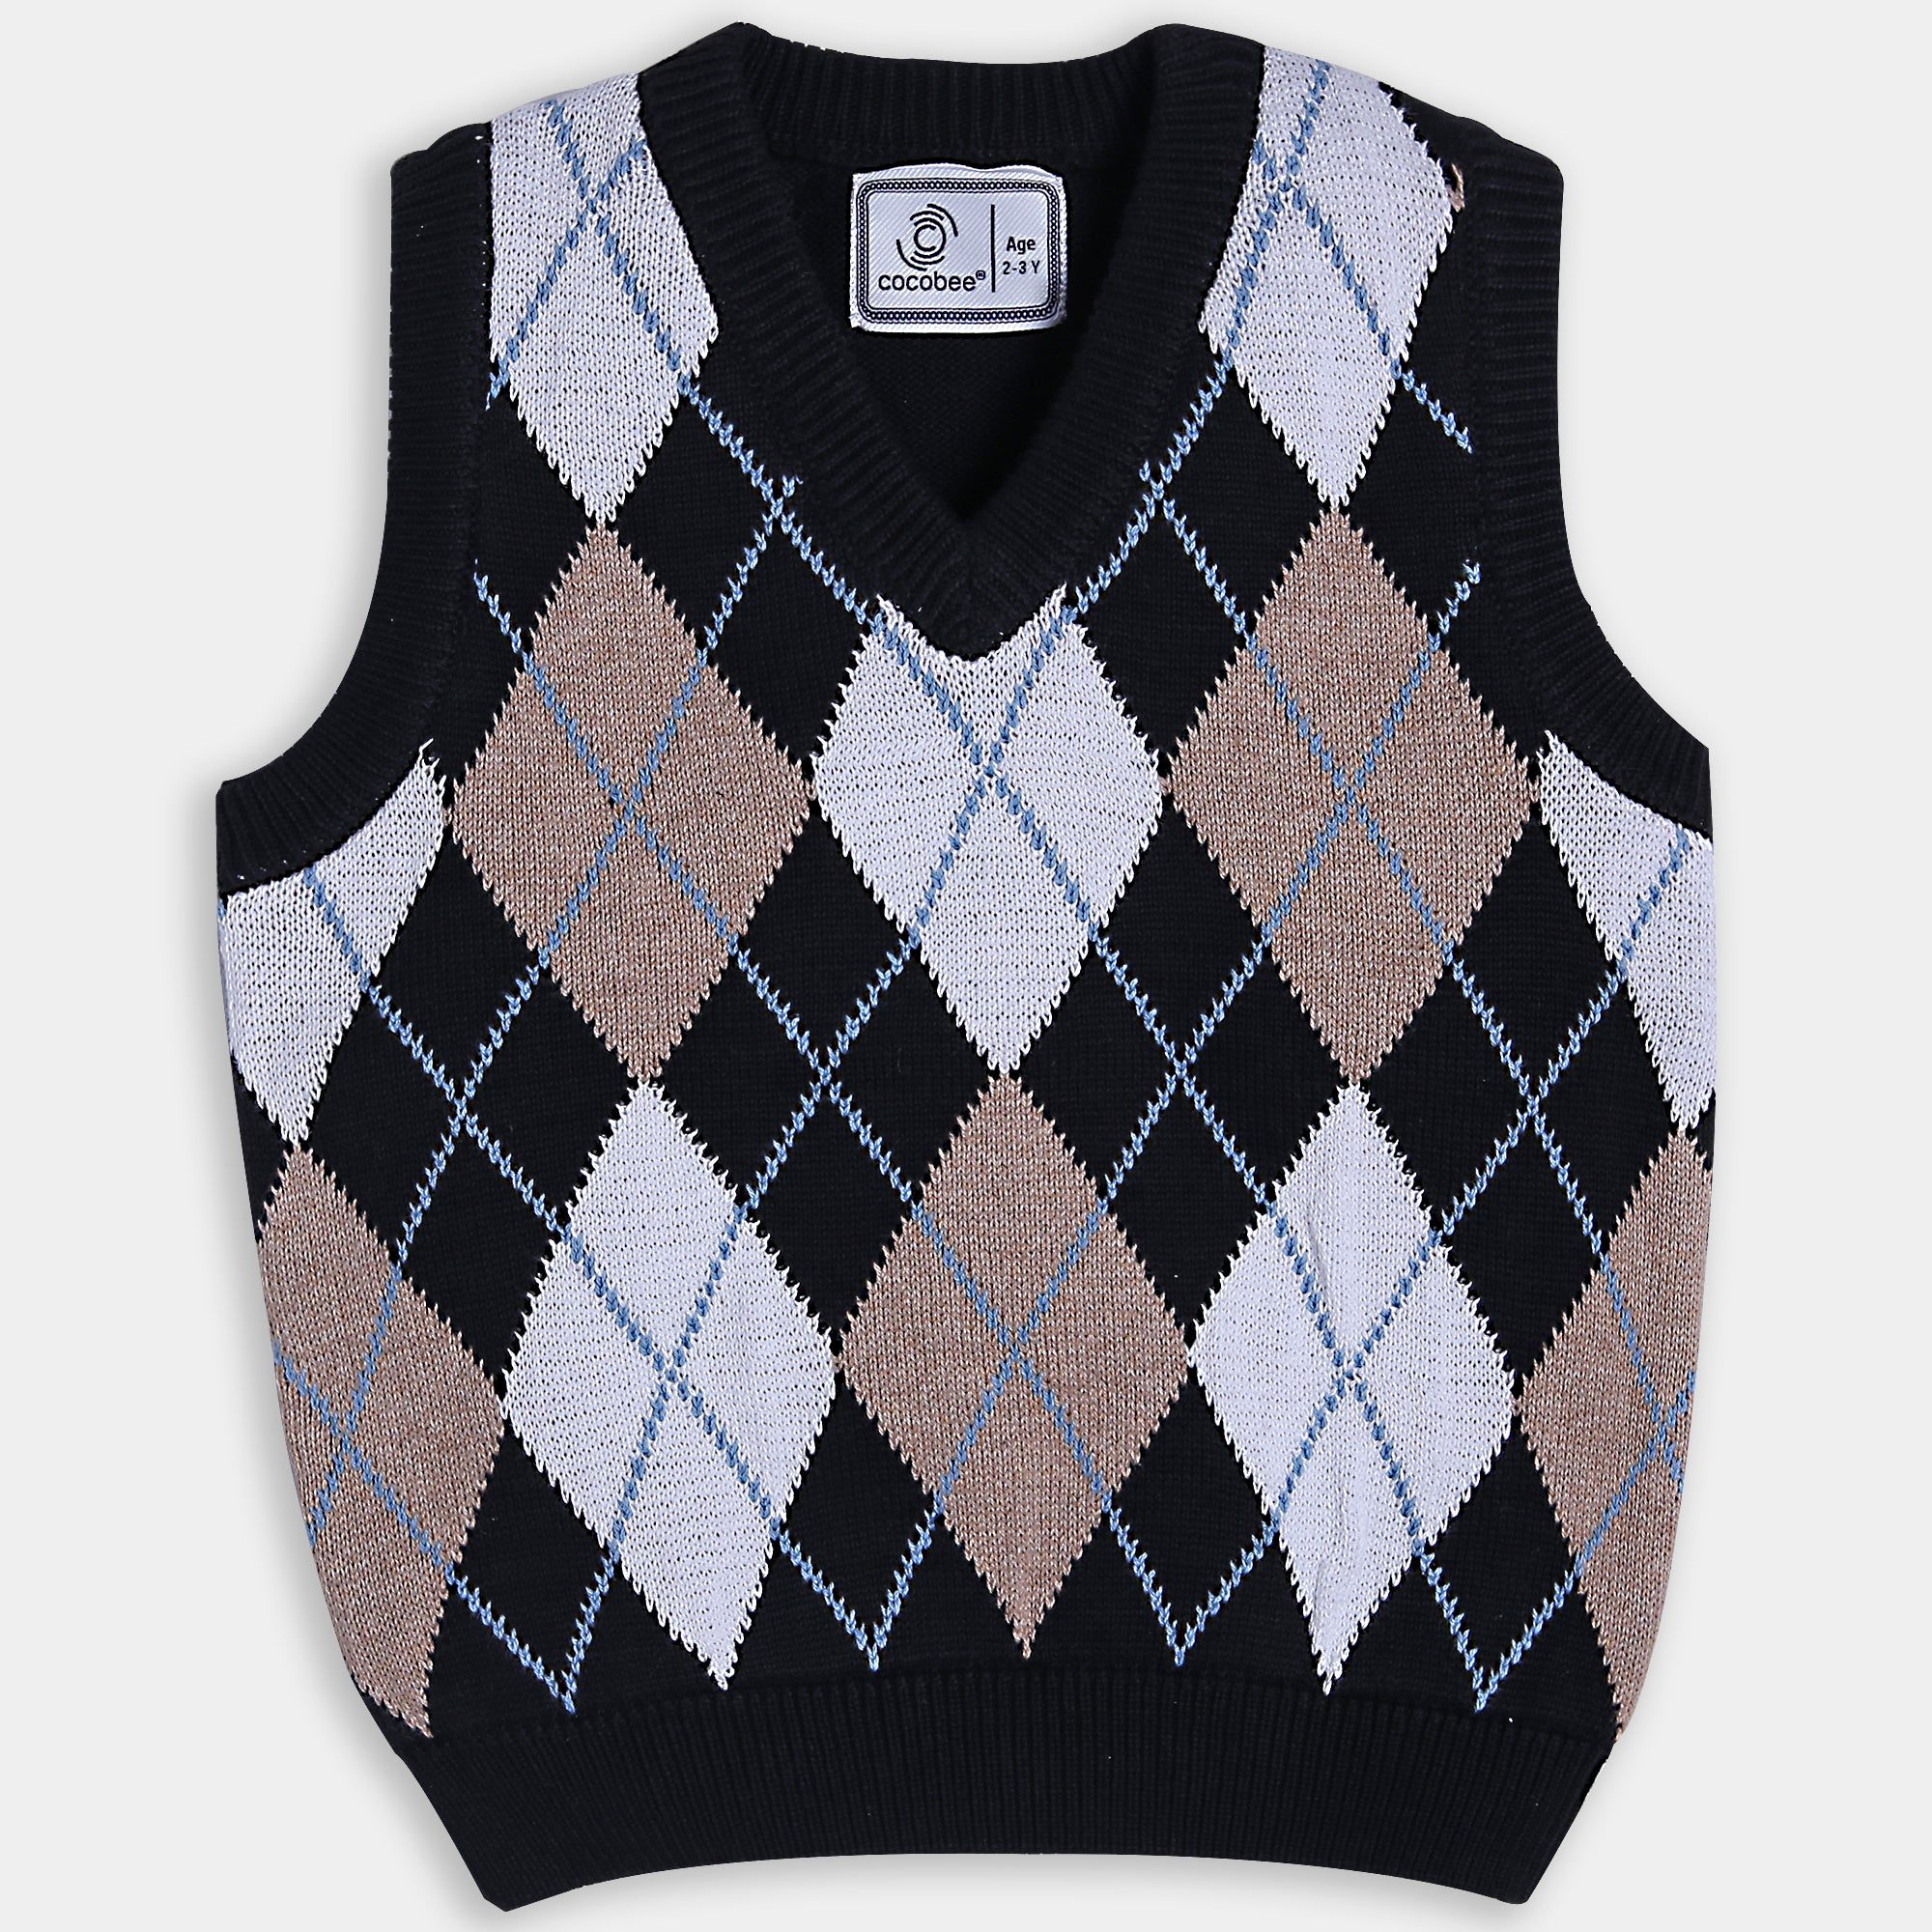 Cross Box Sweater